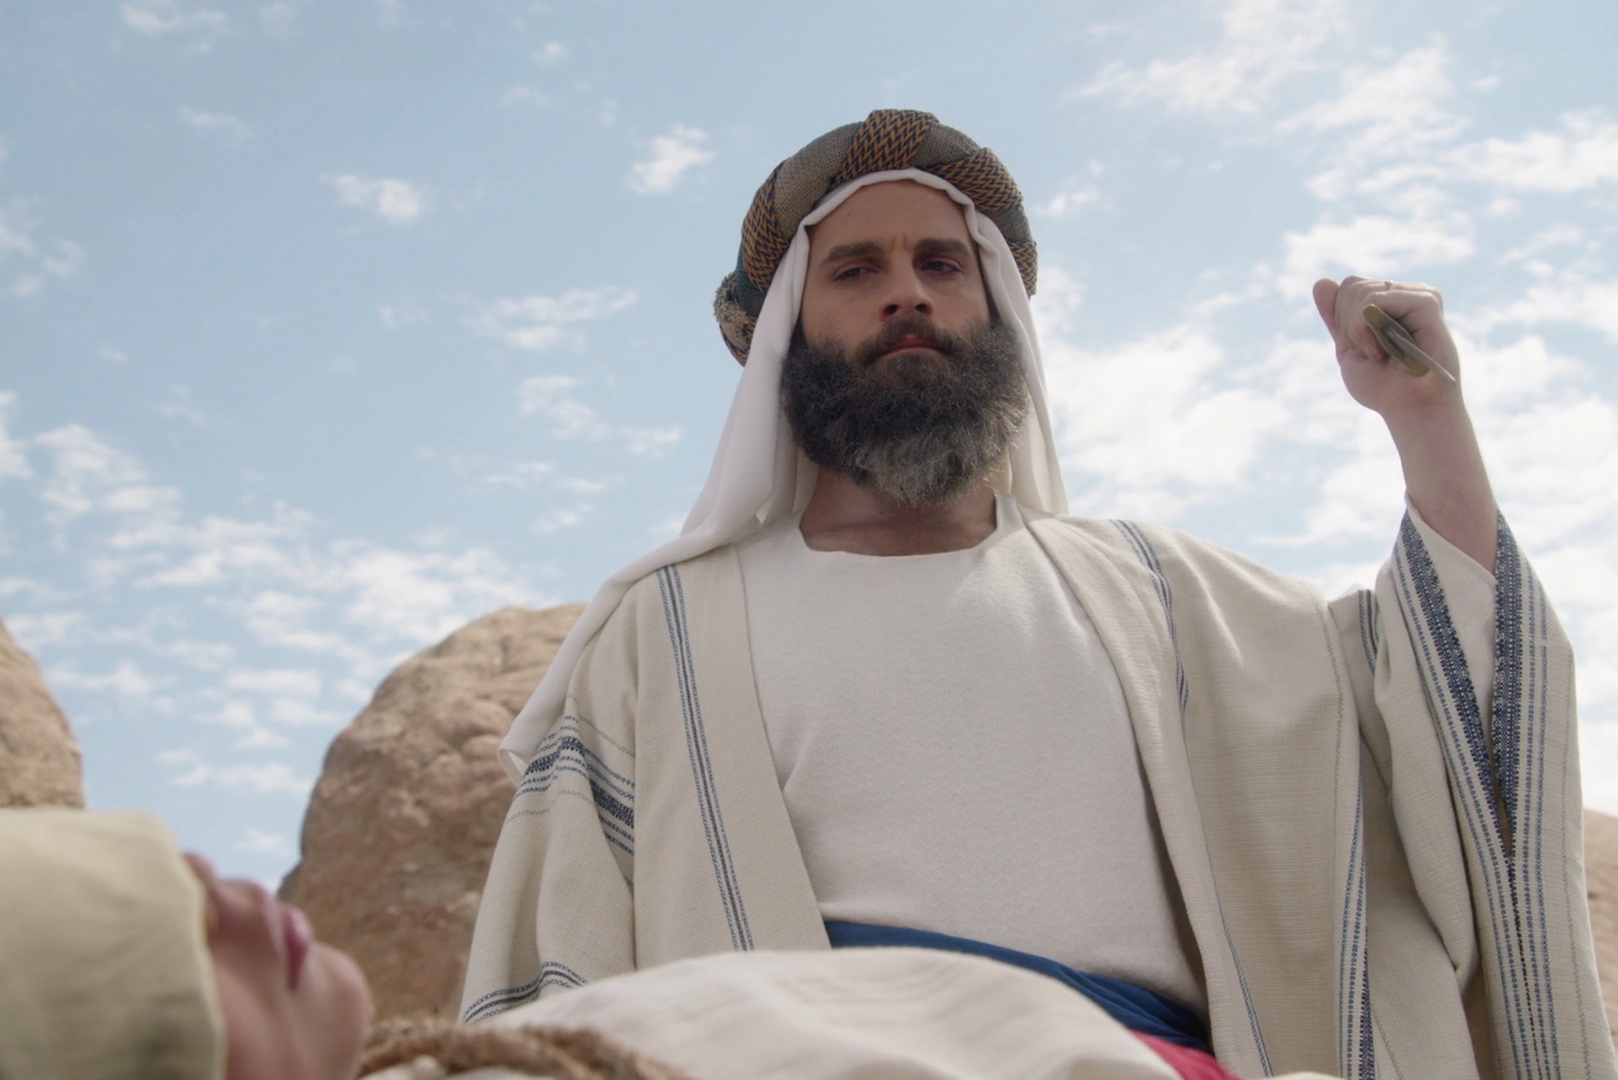 The Bible gets a hilariously dead-pan reimagining in this short film